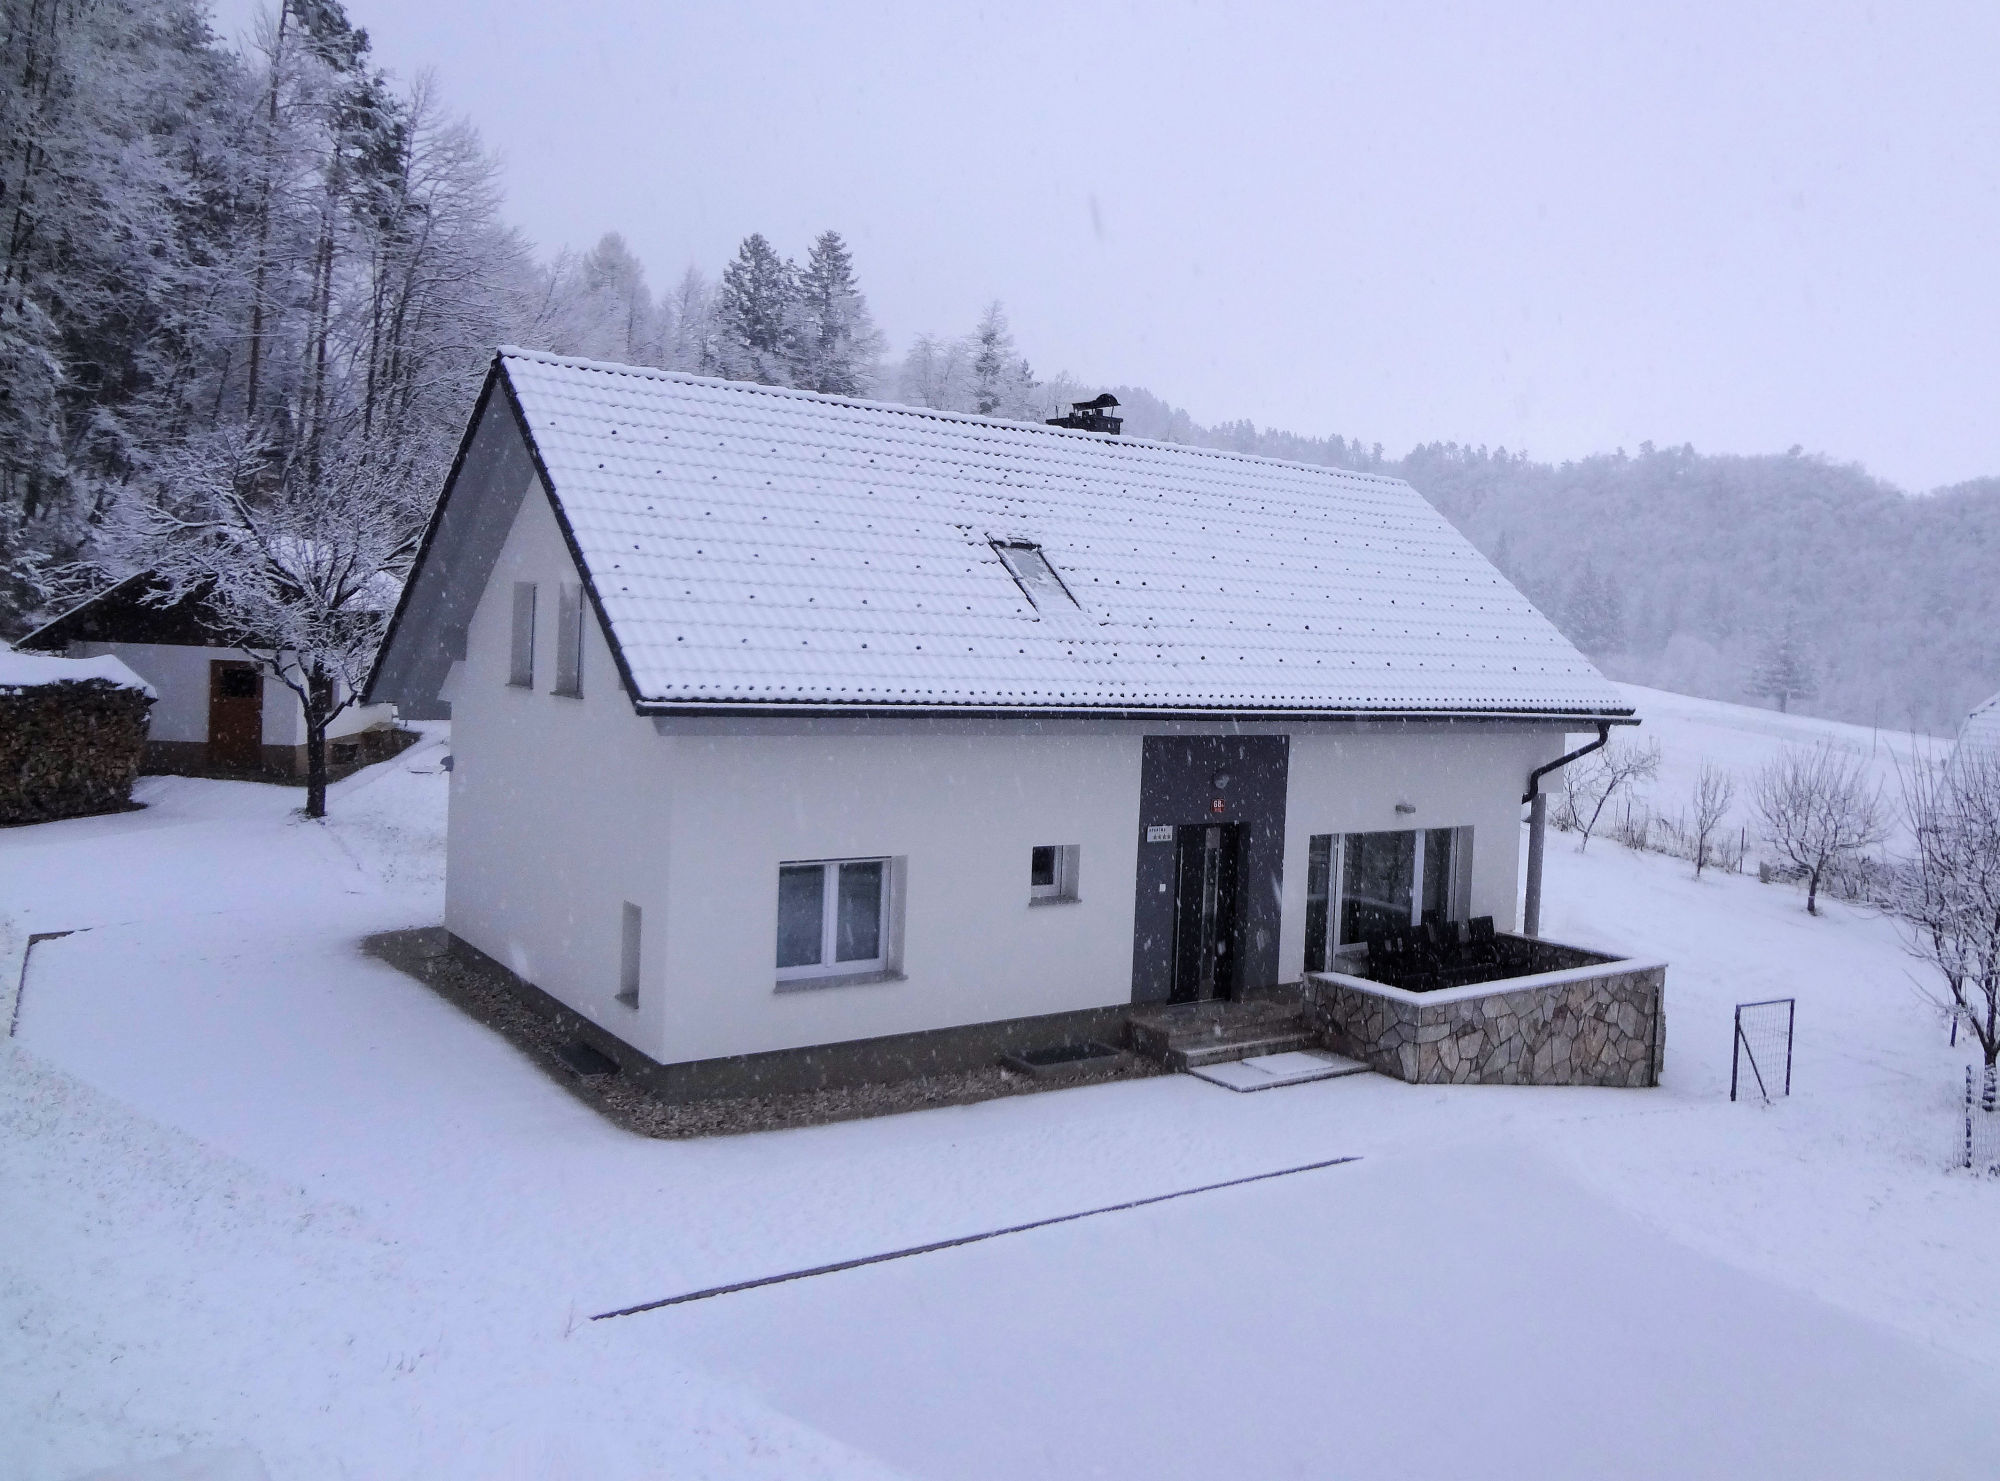 Property No.2 of Apartments Fine Stay in the winter during snowfall